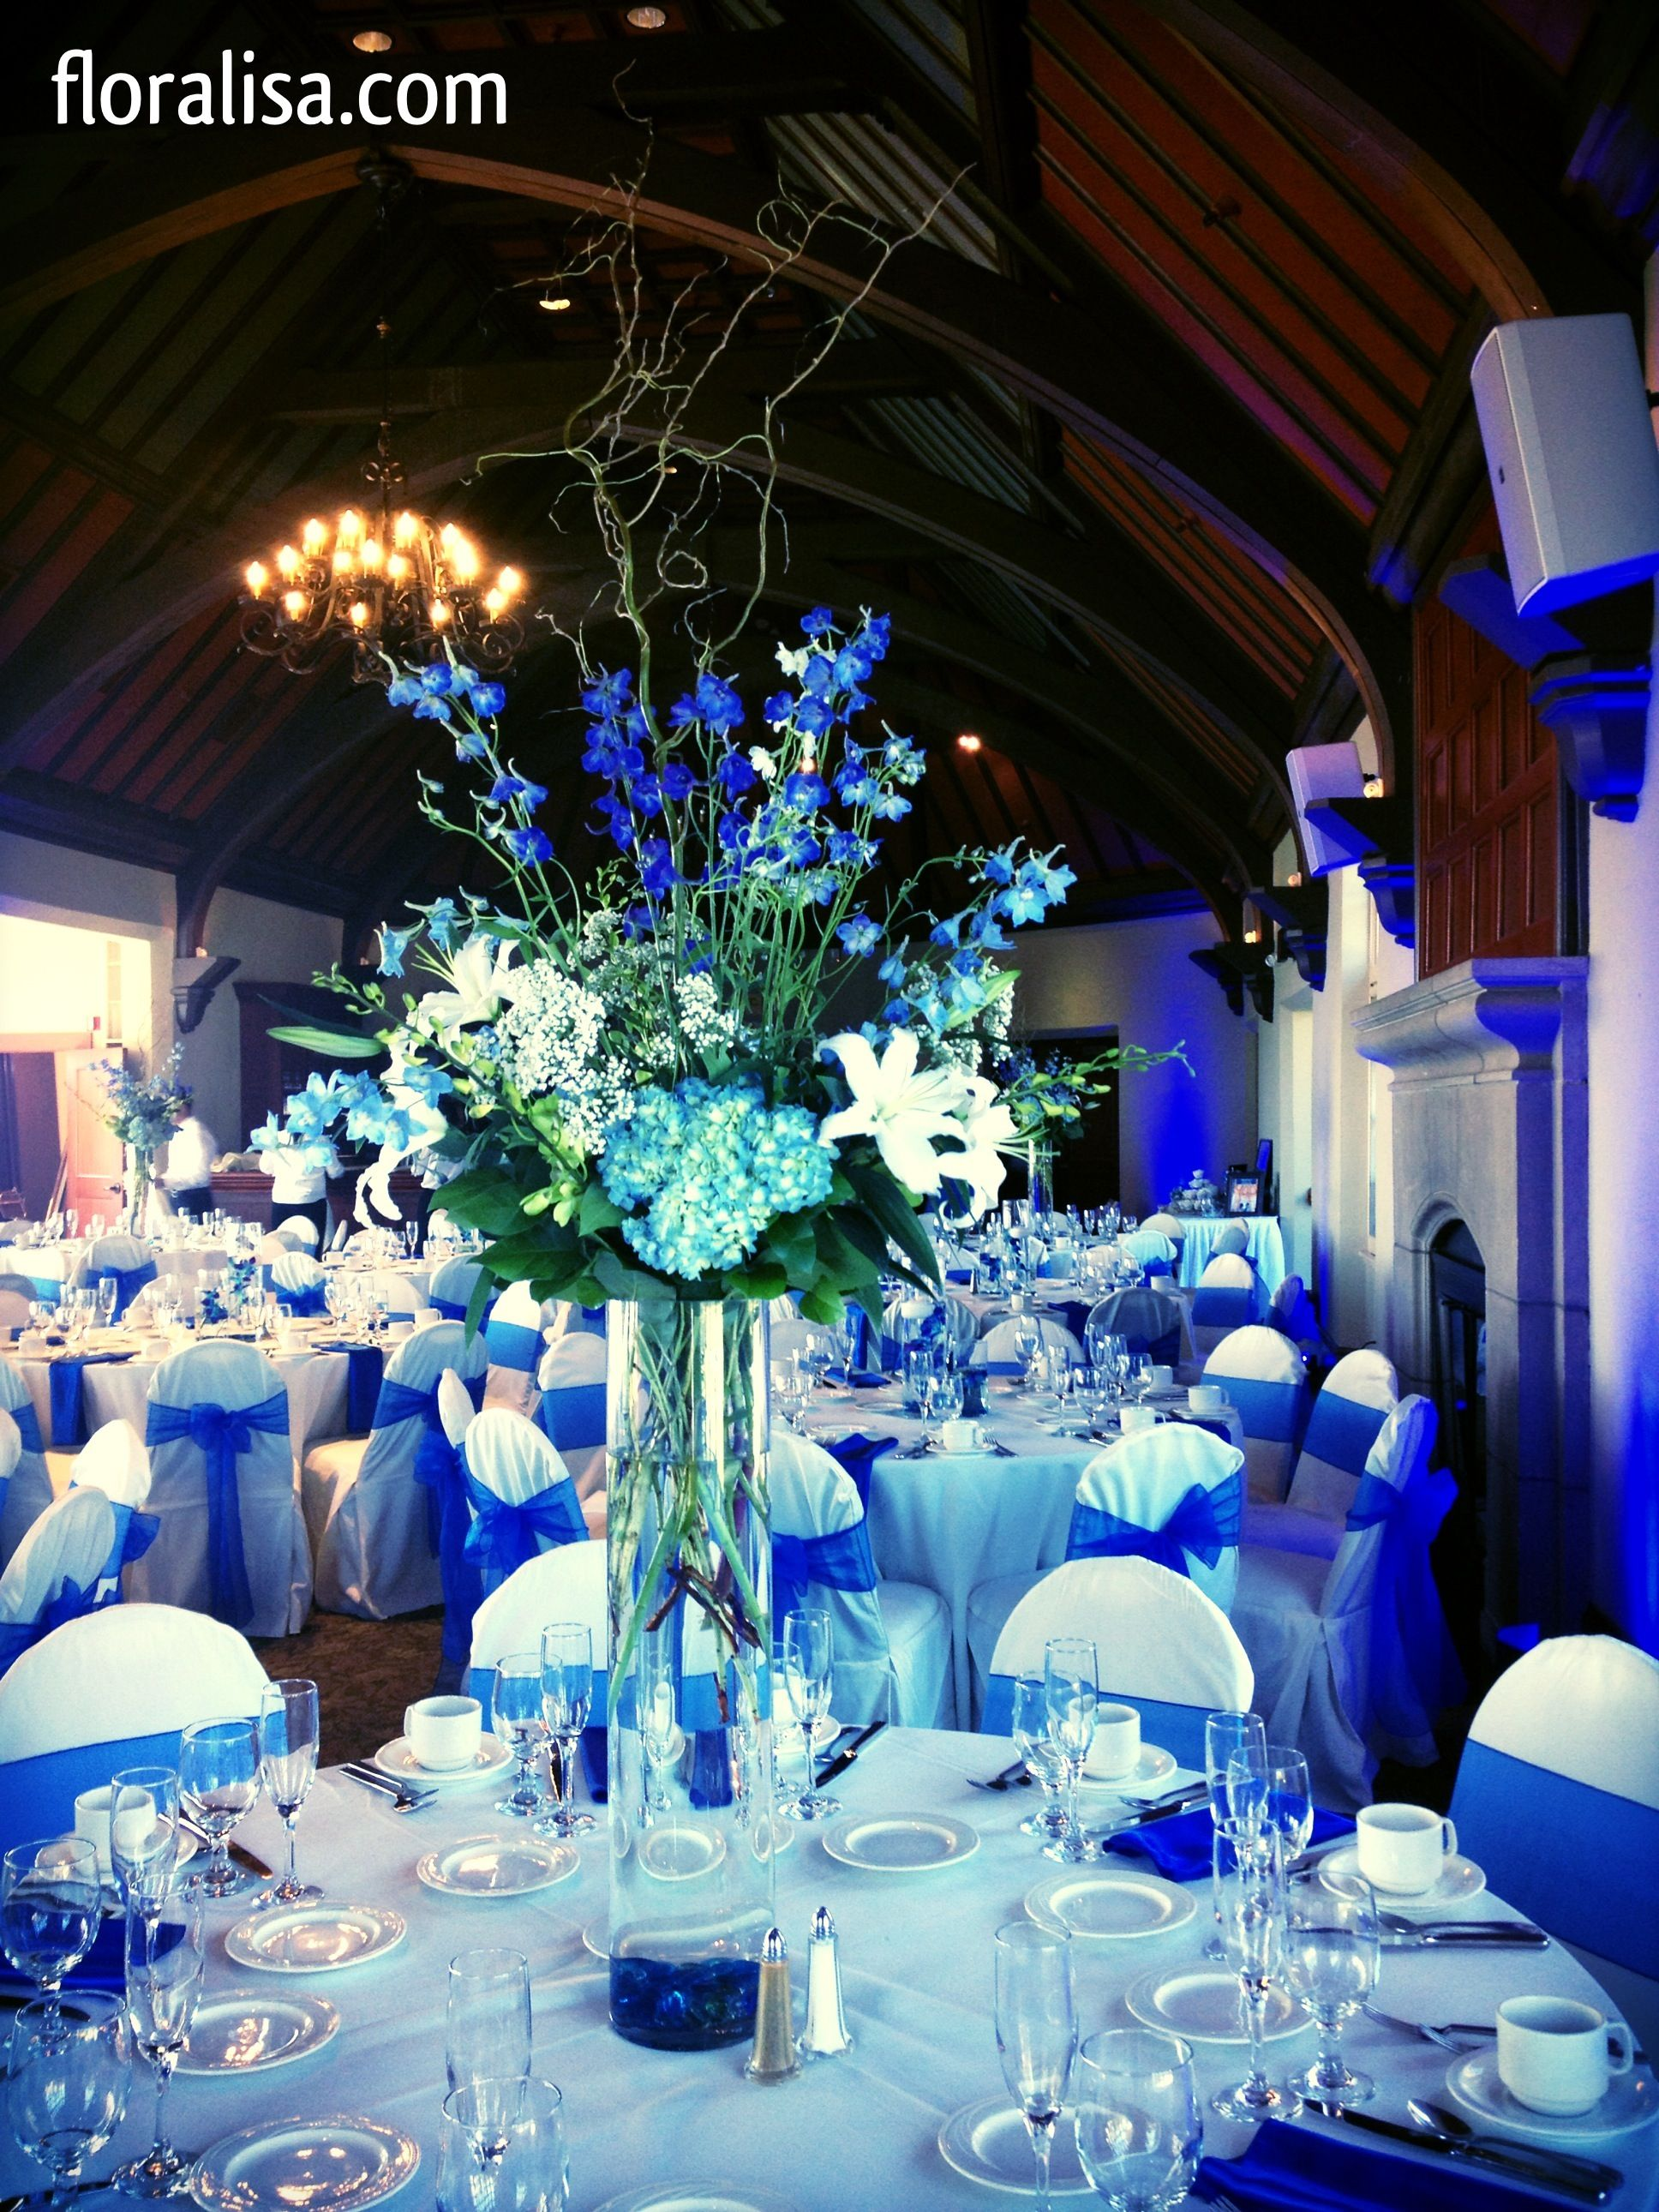 Gorgeous Blue Wedding Table Centerpieces By Floralisa Com Serving